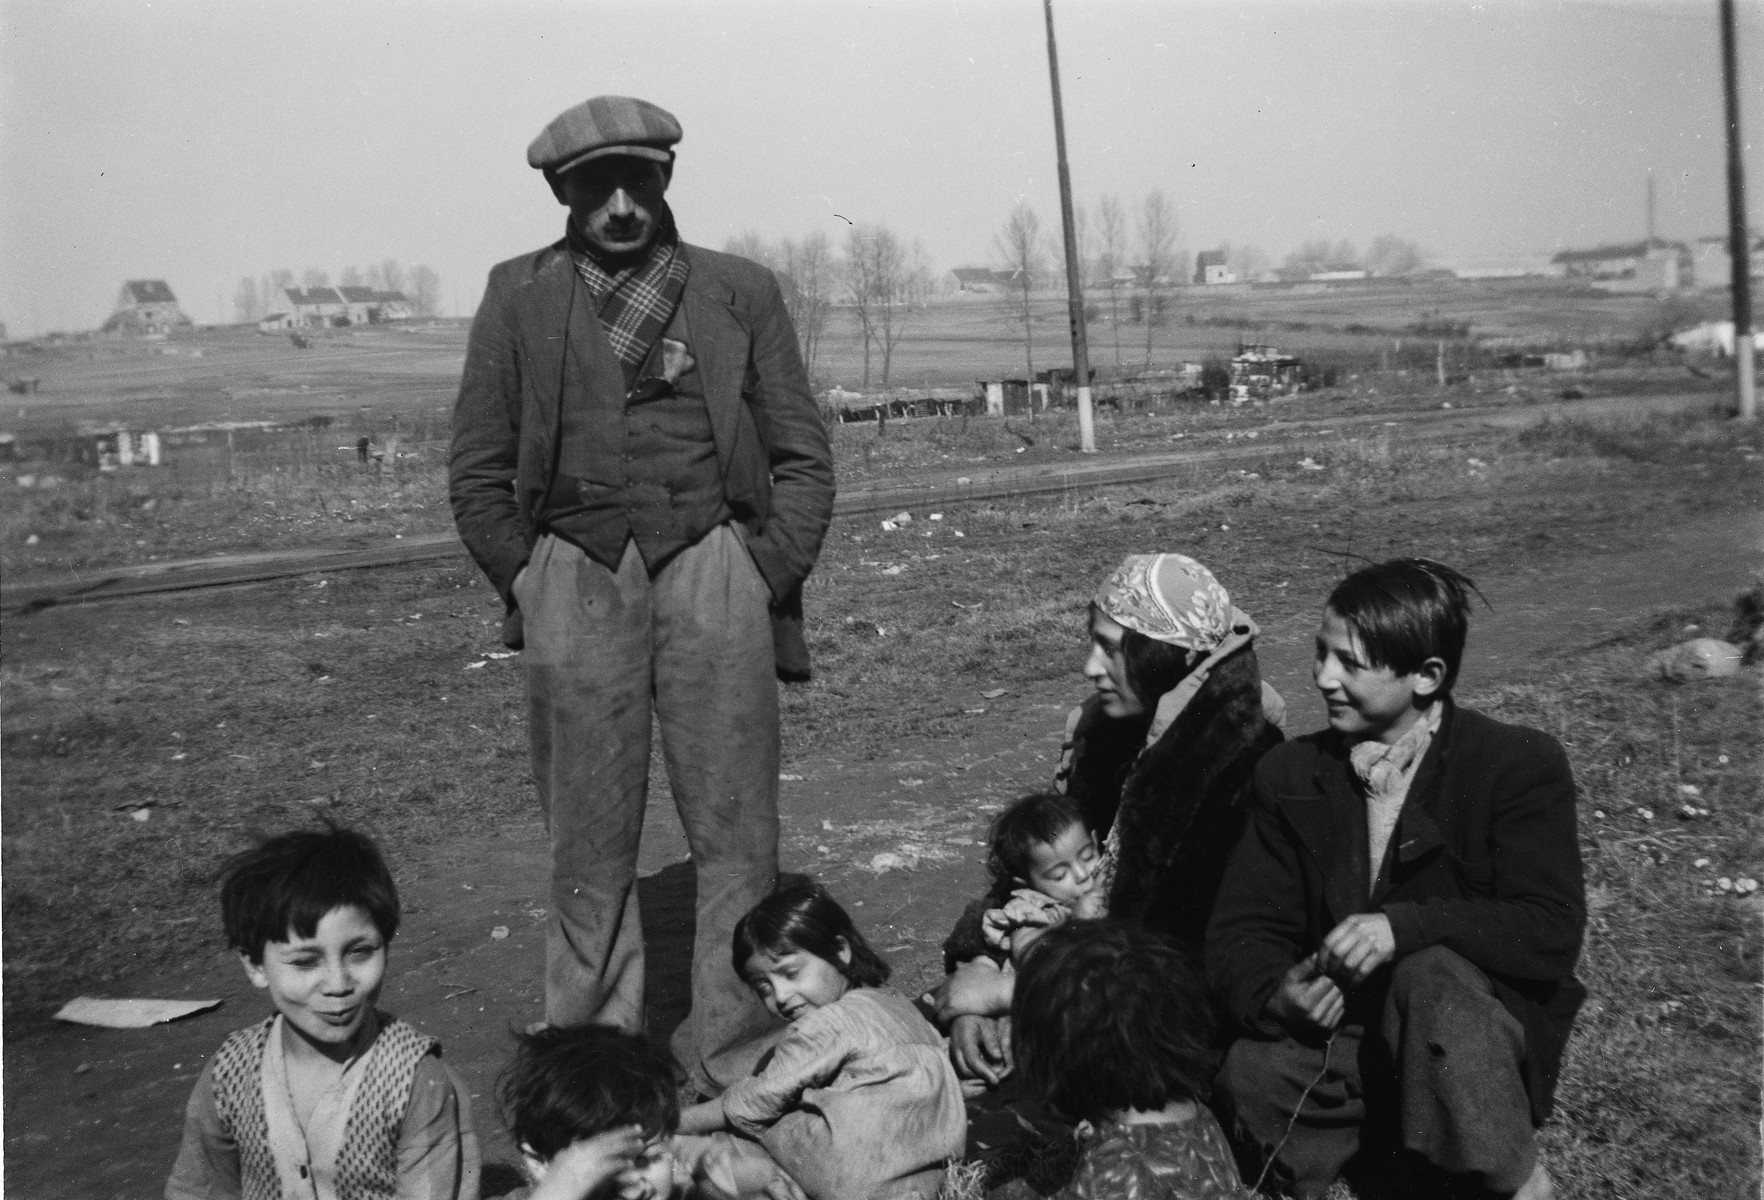 A Romani (Gypsy) family poses outdoors.